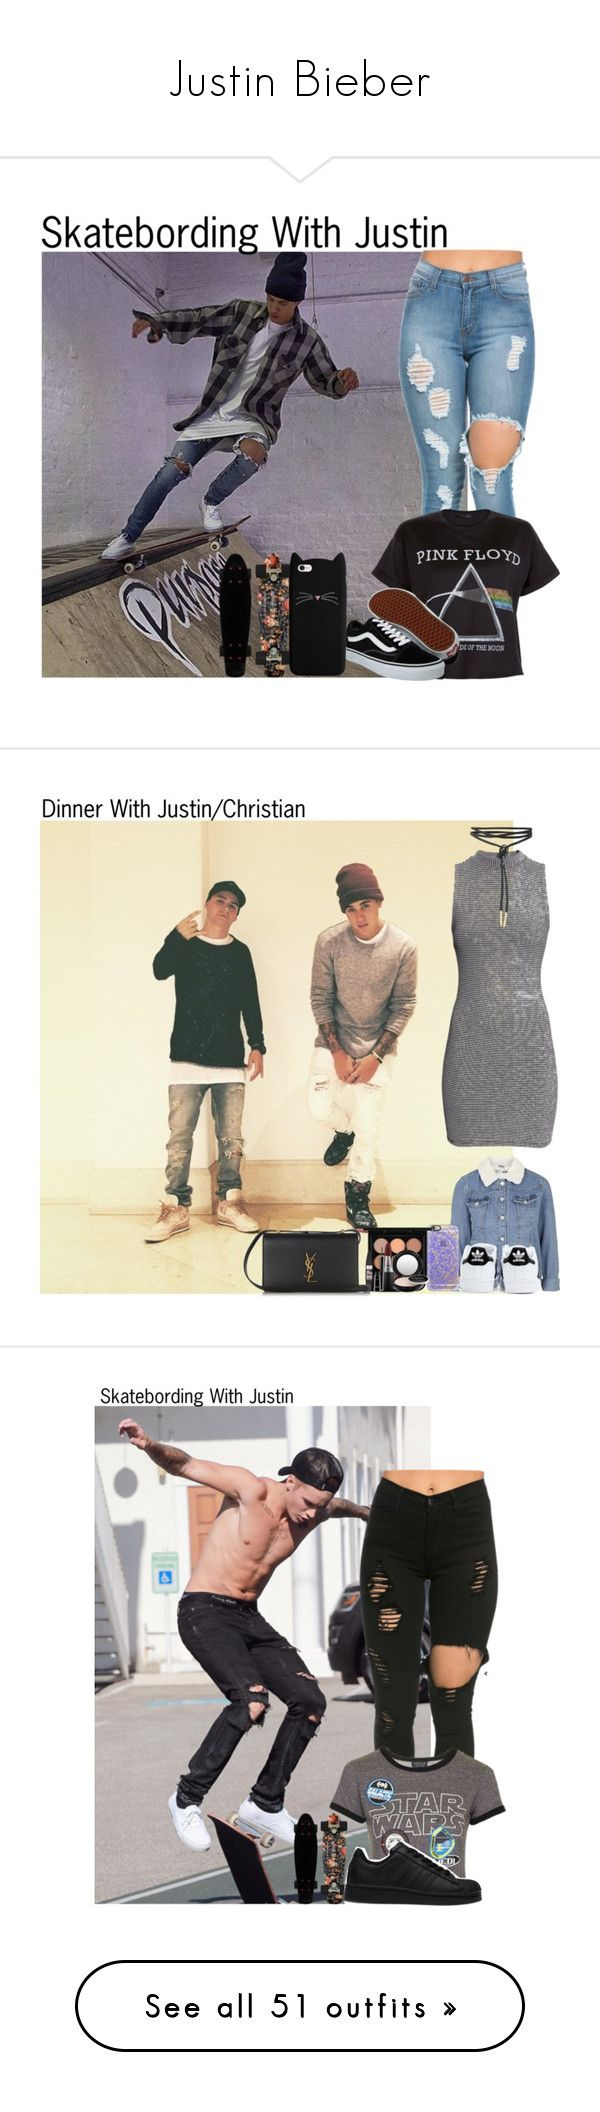 """""""Justin Bieber"""" by ixssa ❤ liked on Polyvore featuring Justin Bieber, New Look, Vans, bieber, JustinBieber, outfits, 2016, skatebording, H&M and Topshop"""